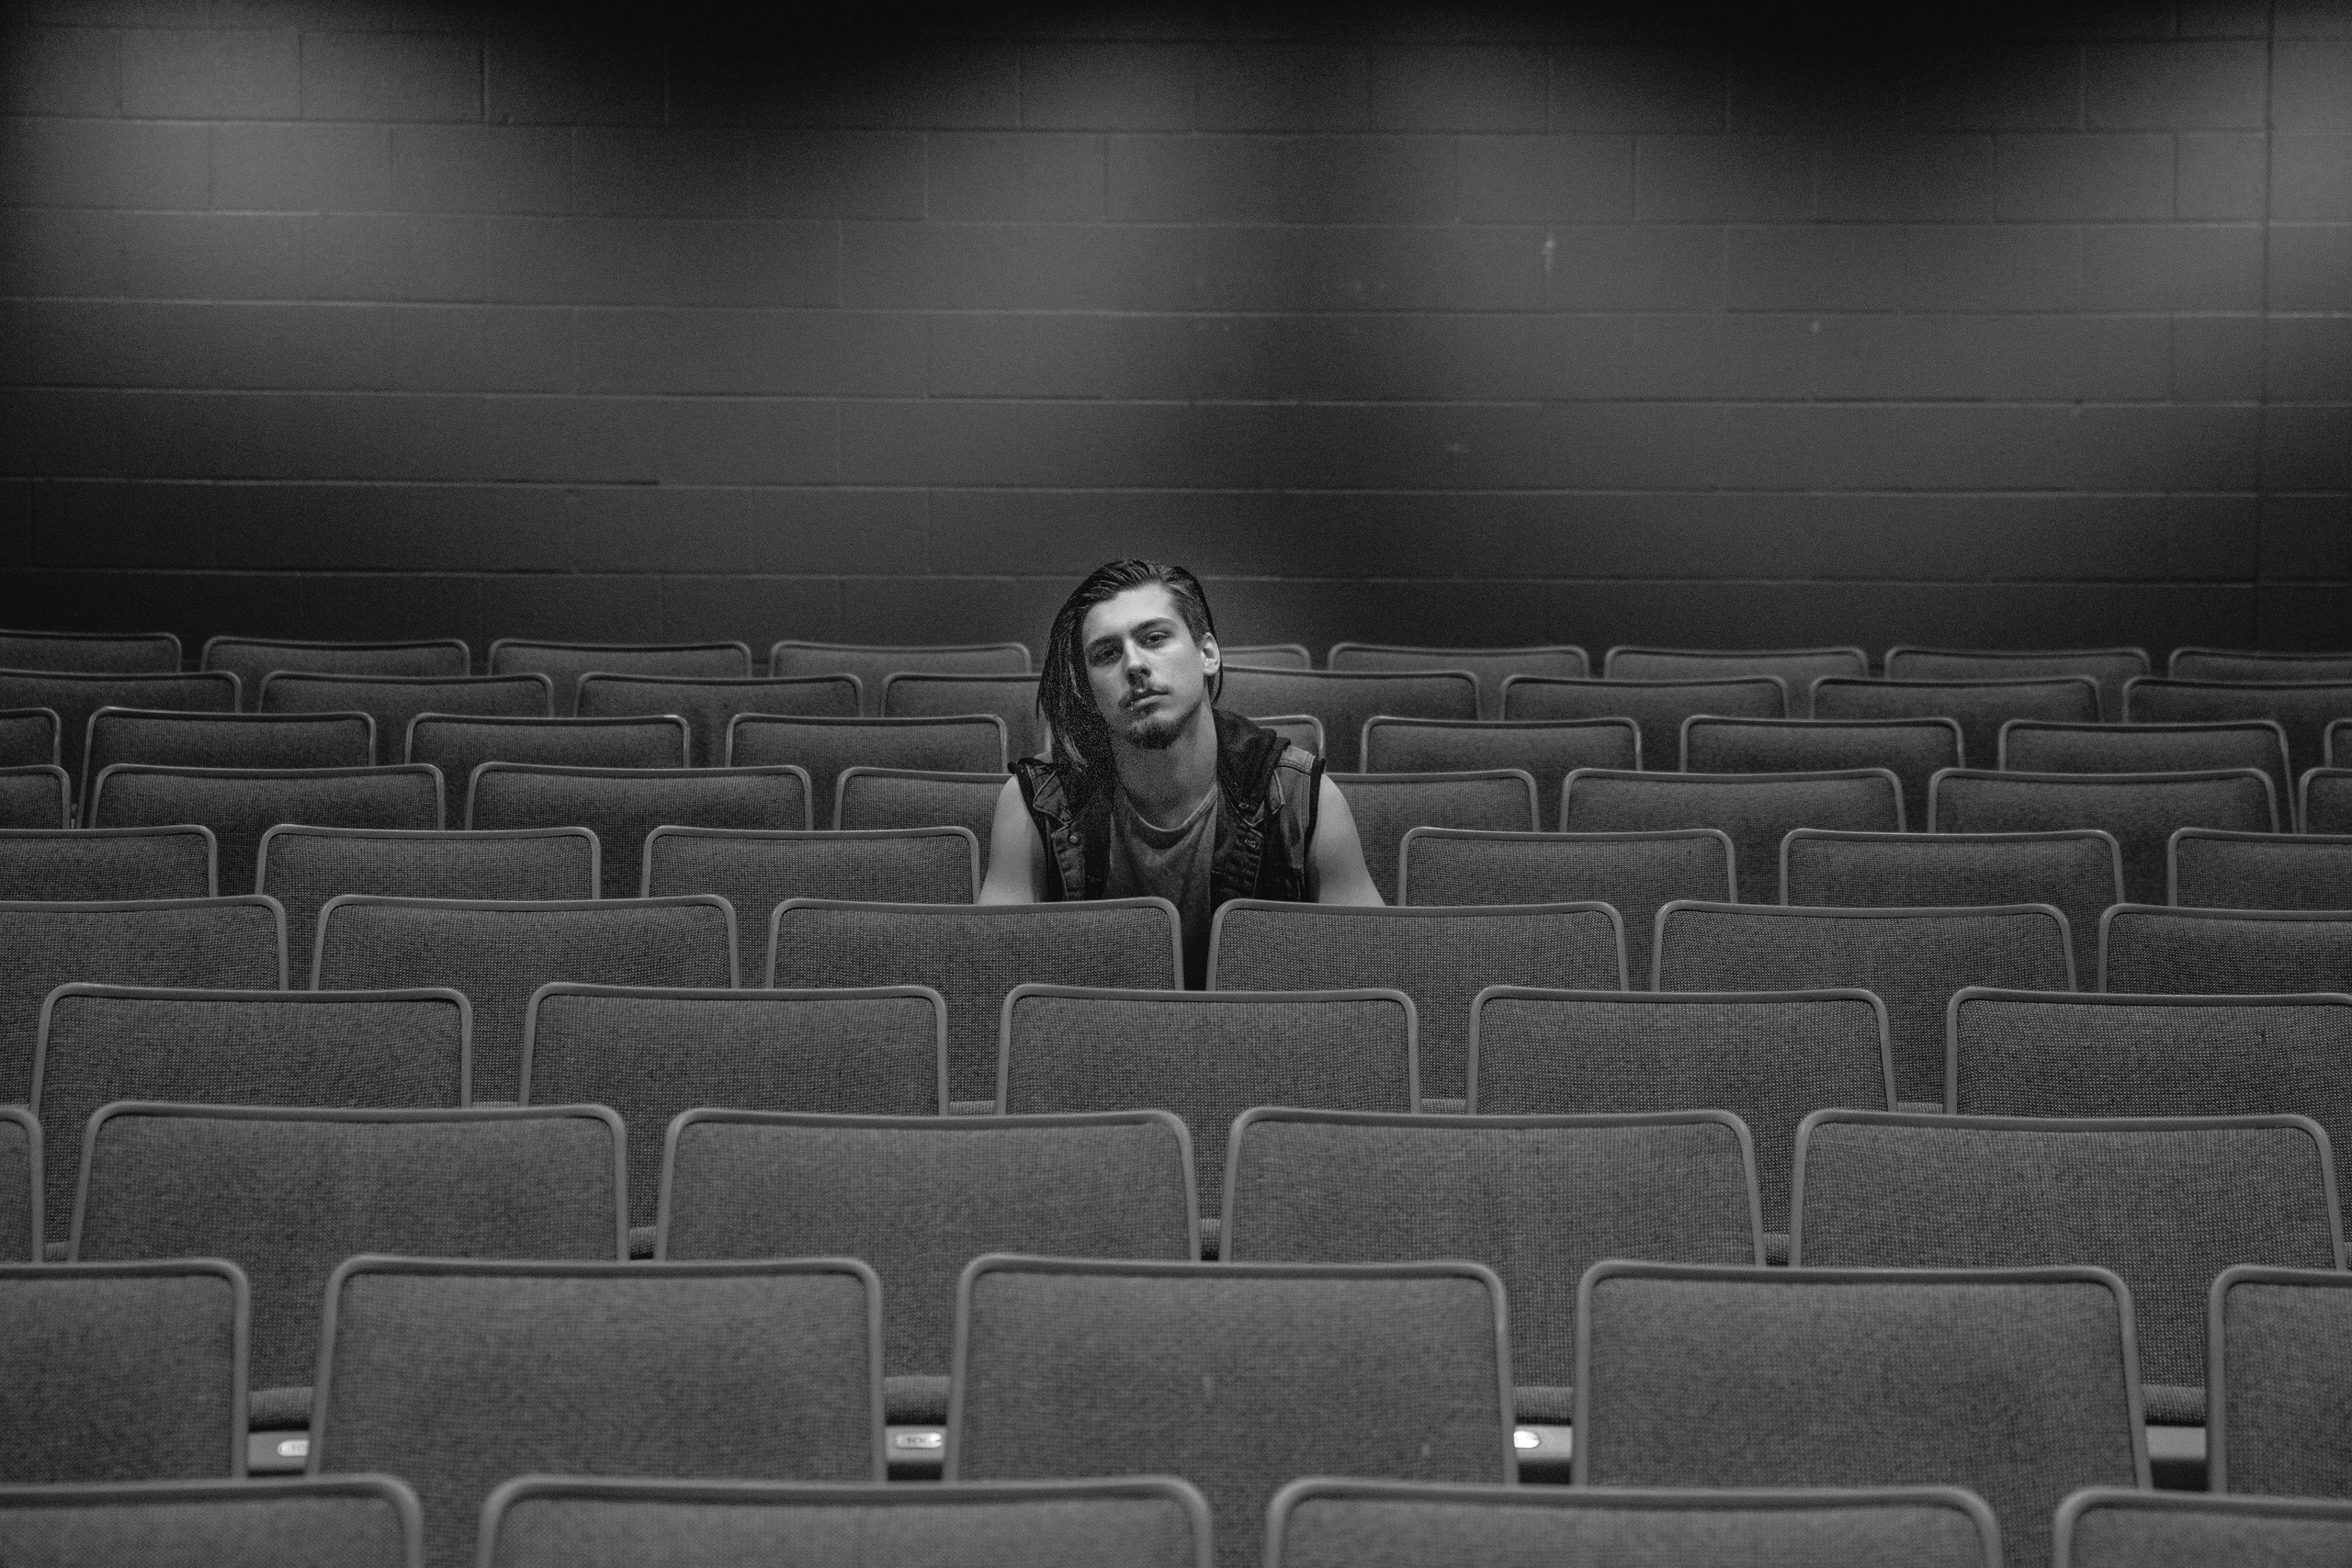 Black and white image. A high school senior boy sits in the middle of an empty theater.